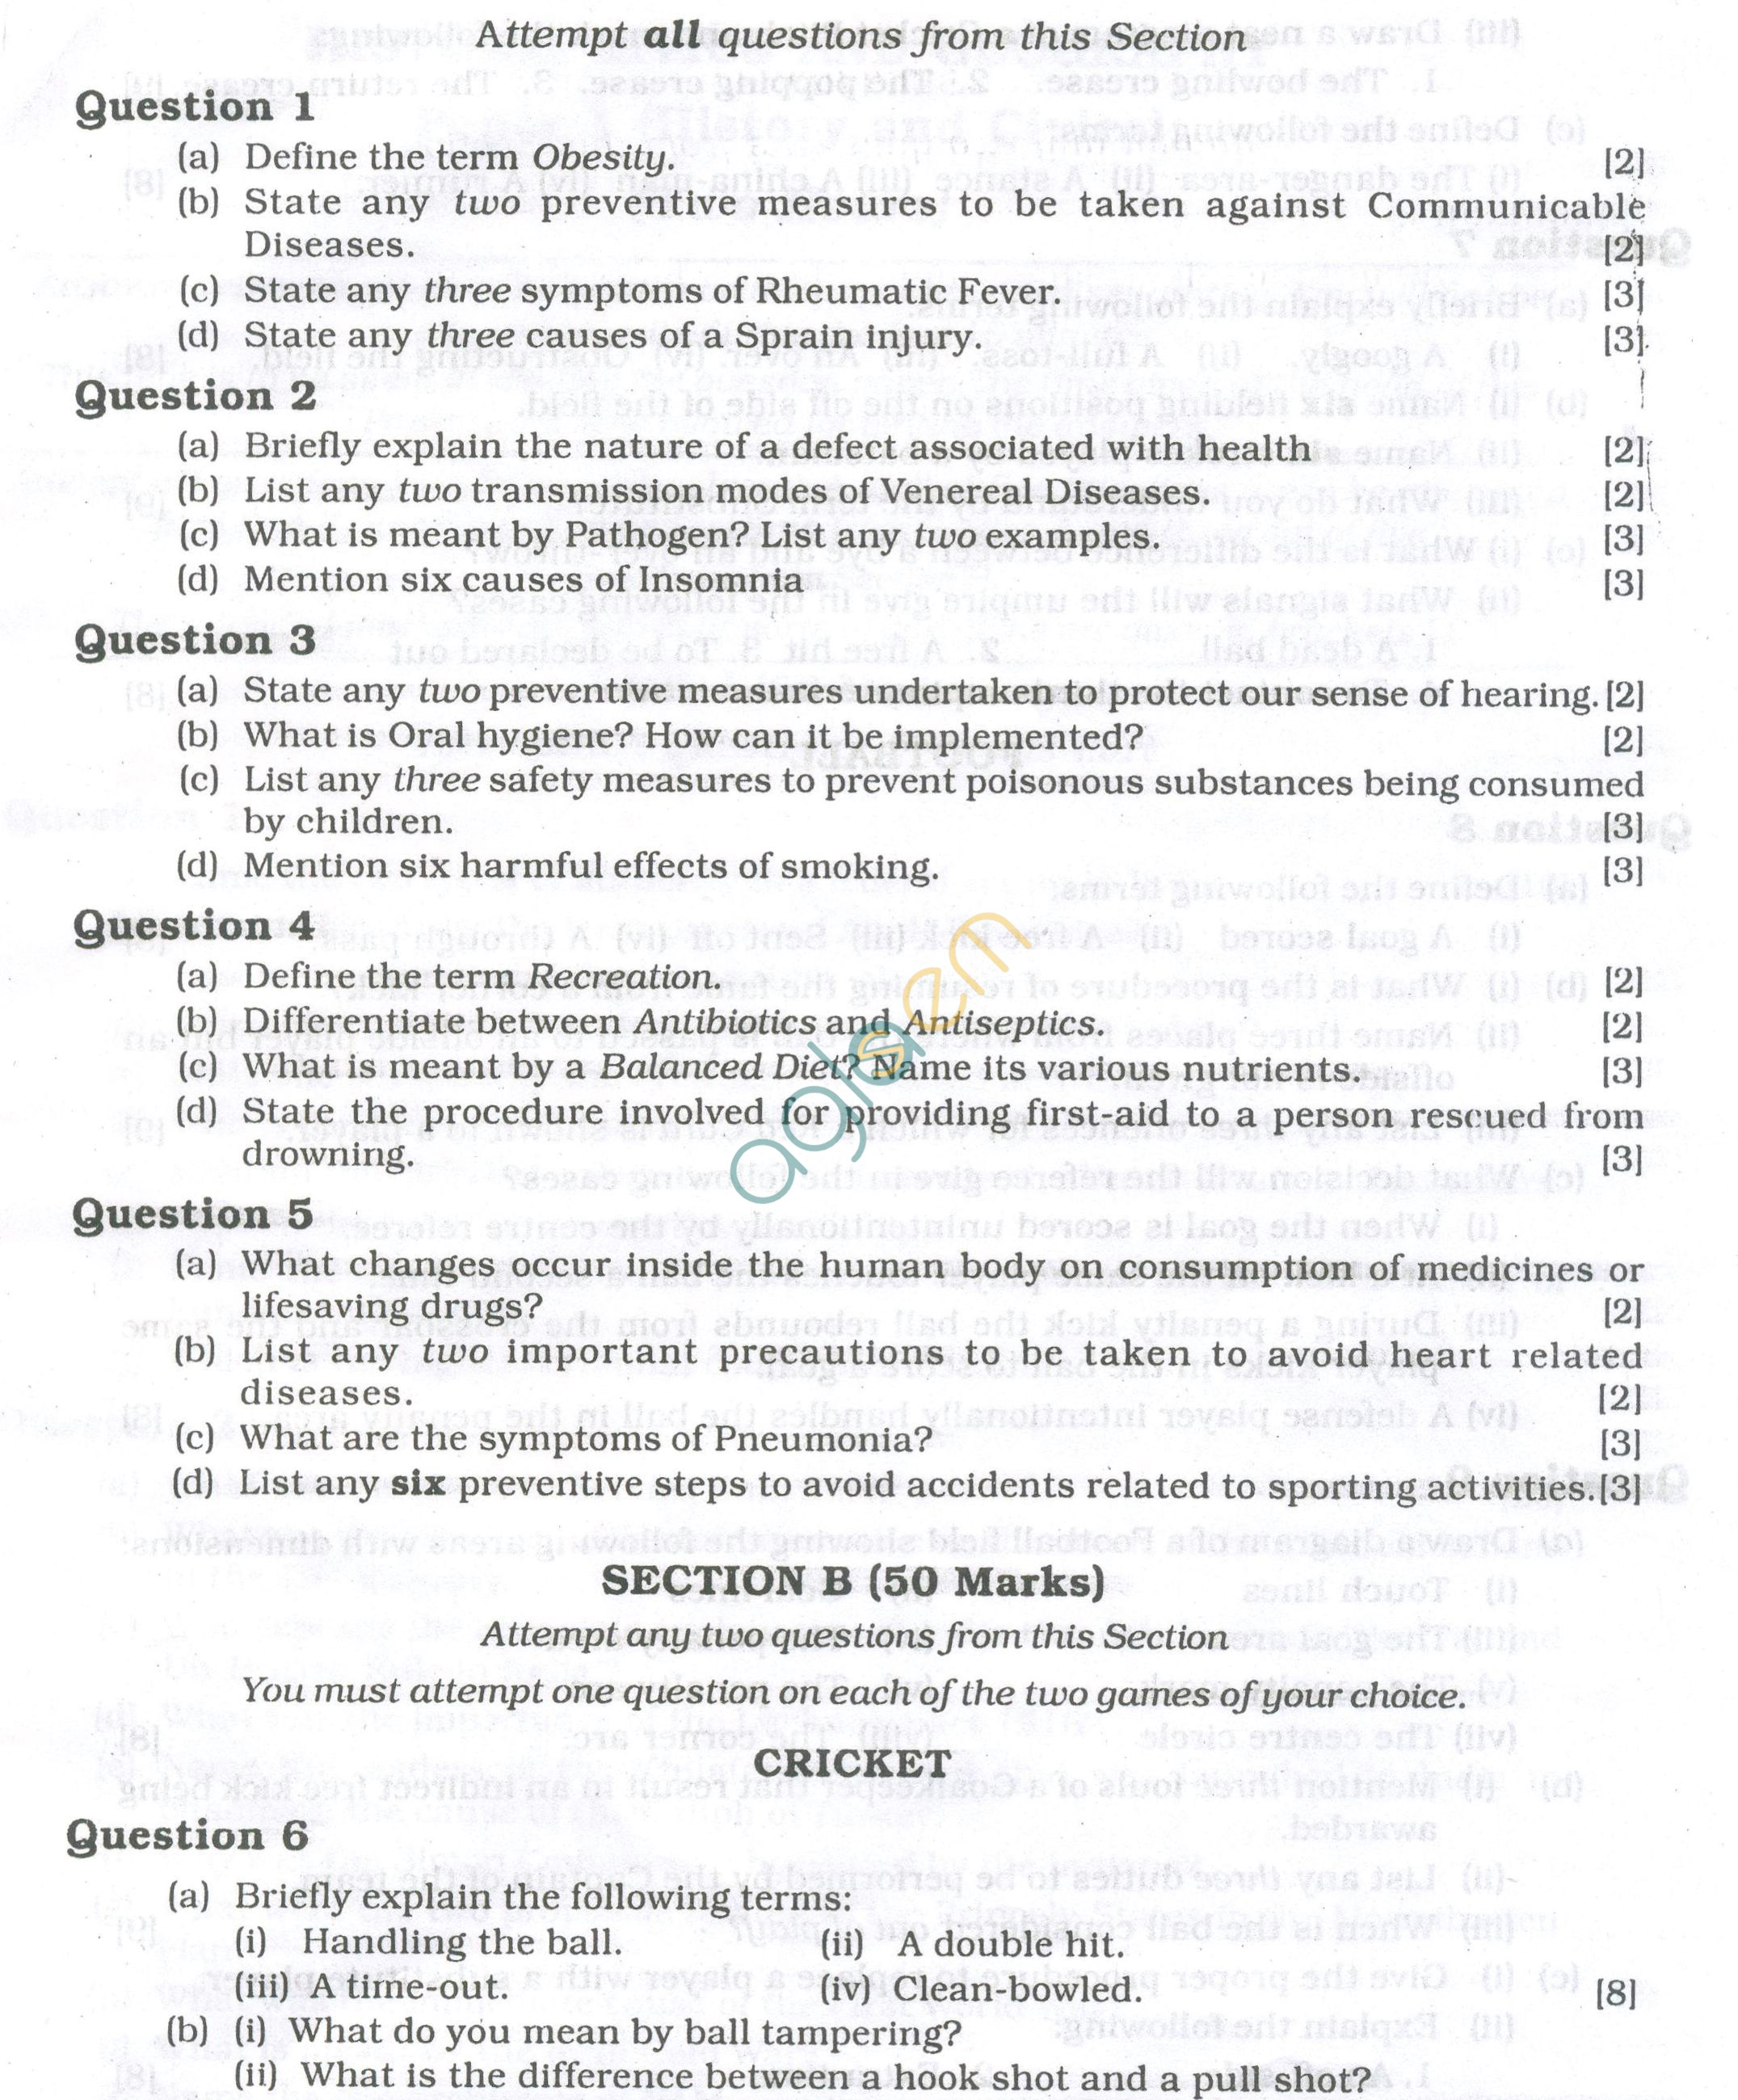 ICSE Question Papers 2013 for Class 10 - Physical Education